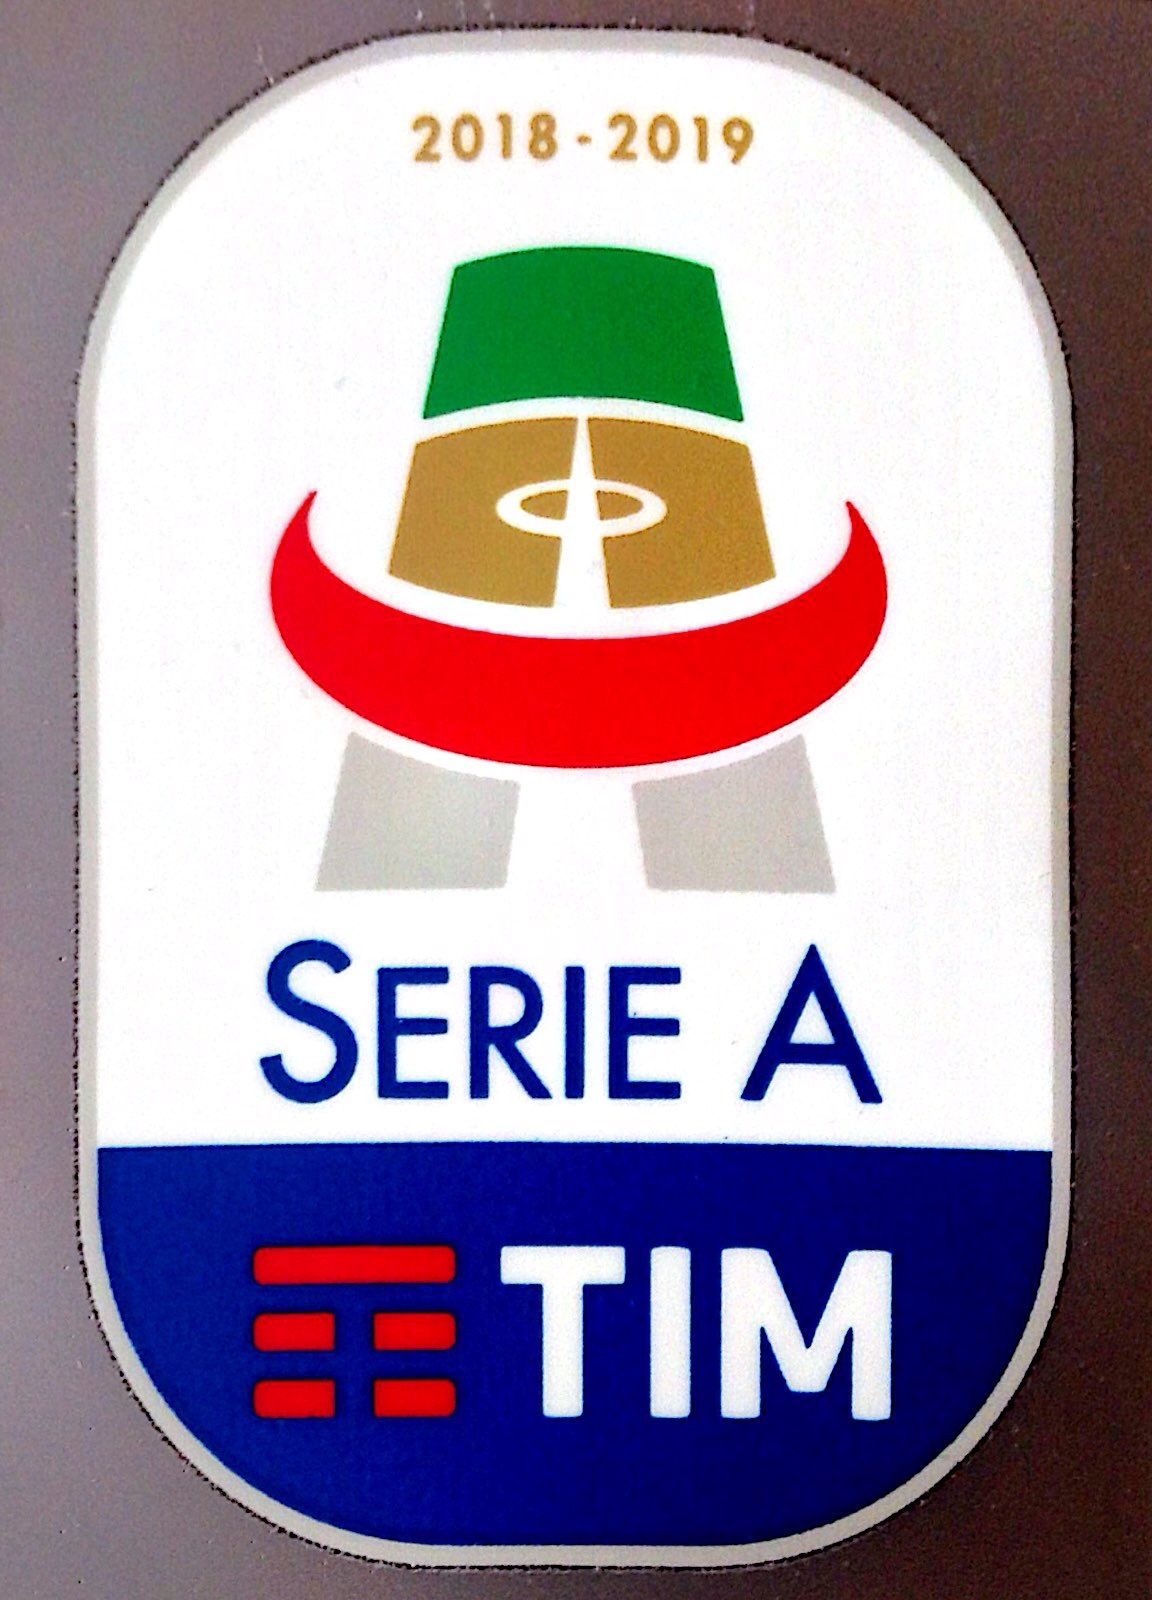 2018 19 Italian Serie A Tim Lega Calcio Official Player Issue Size Football Badge Patch